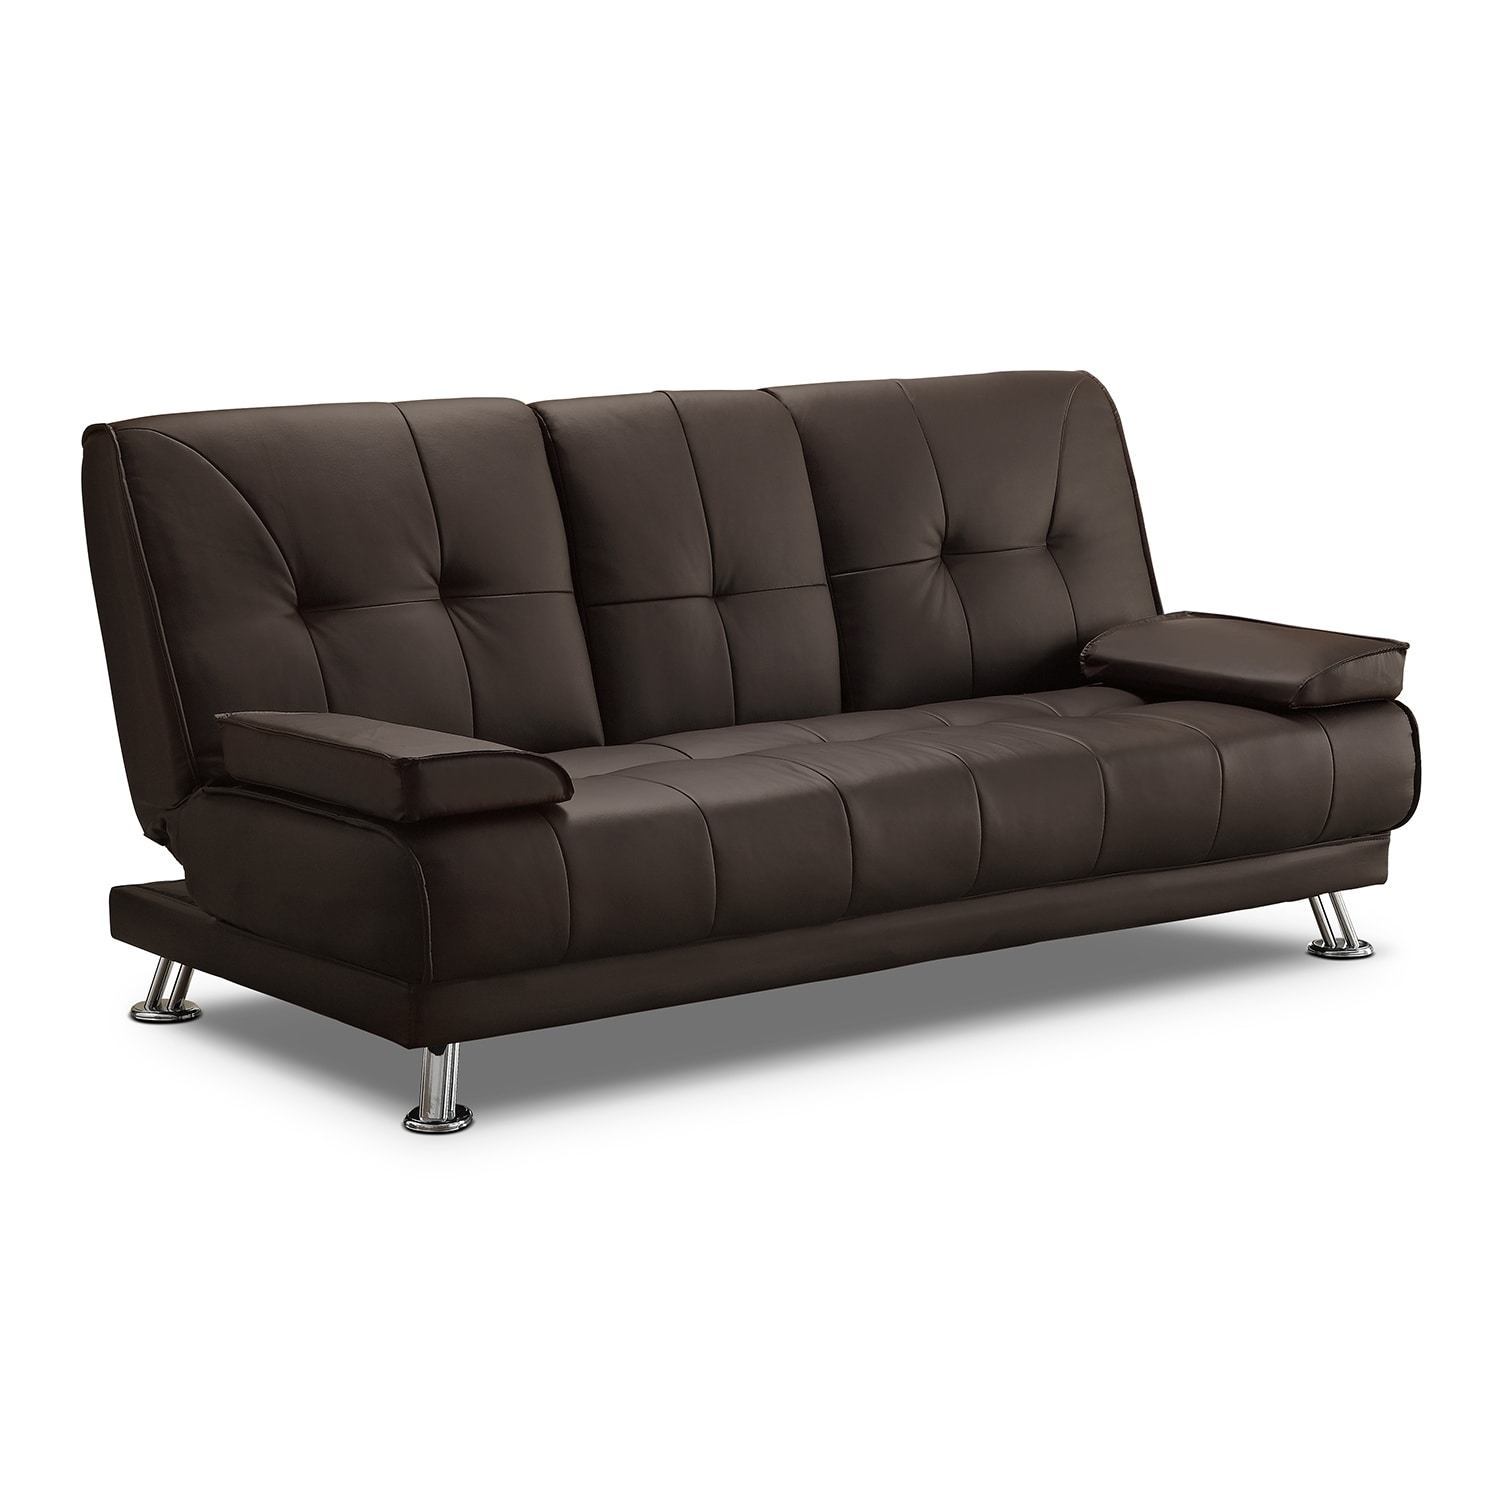 Akira futon sofa bed for Furniture sofa bed